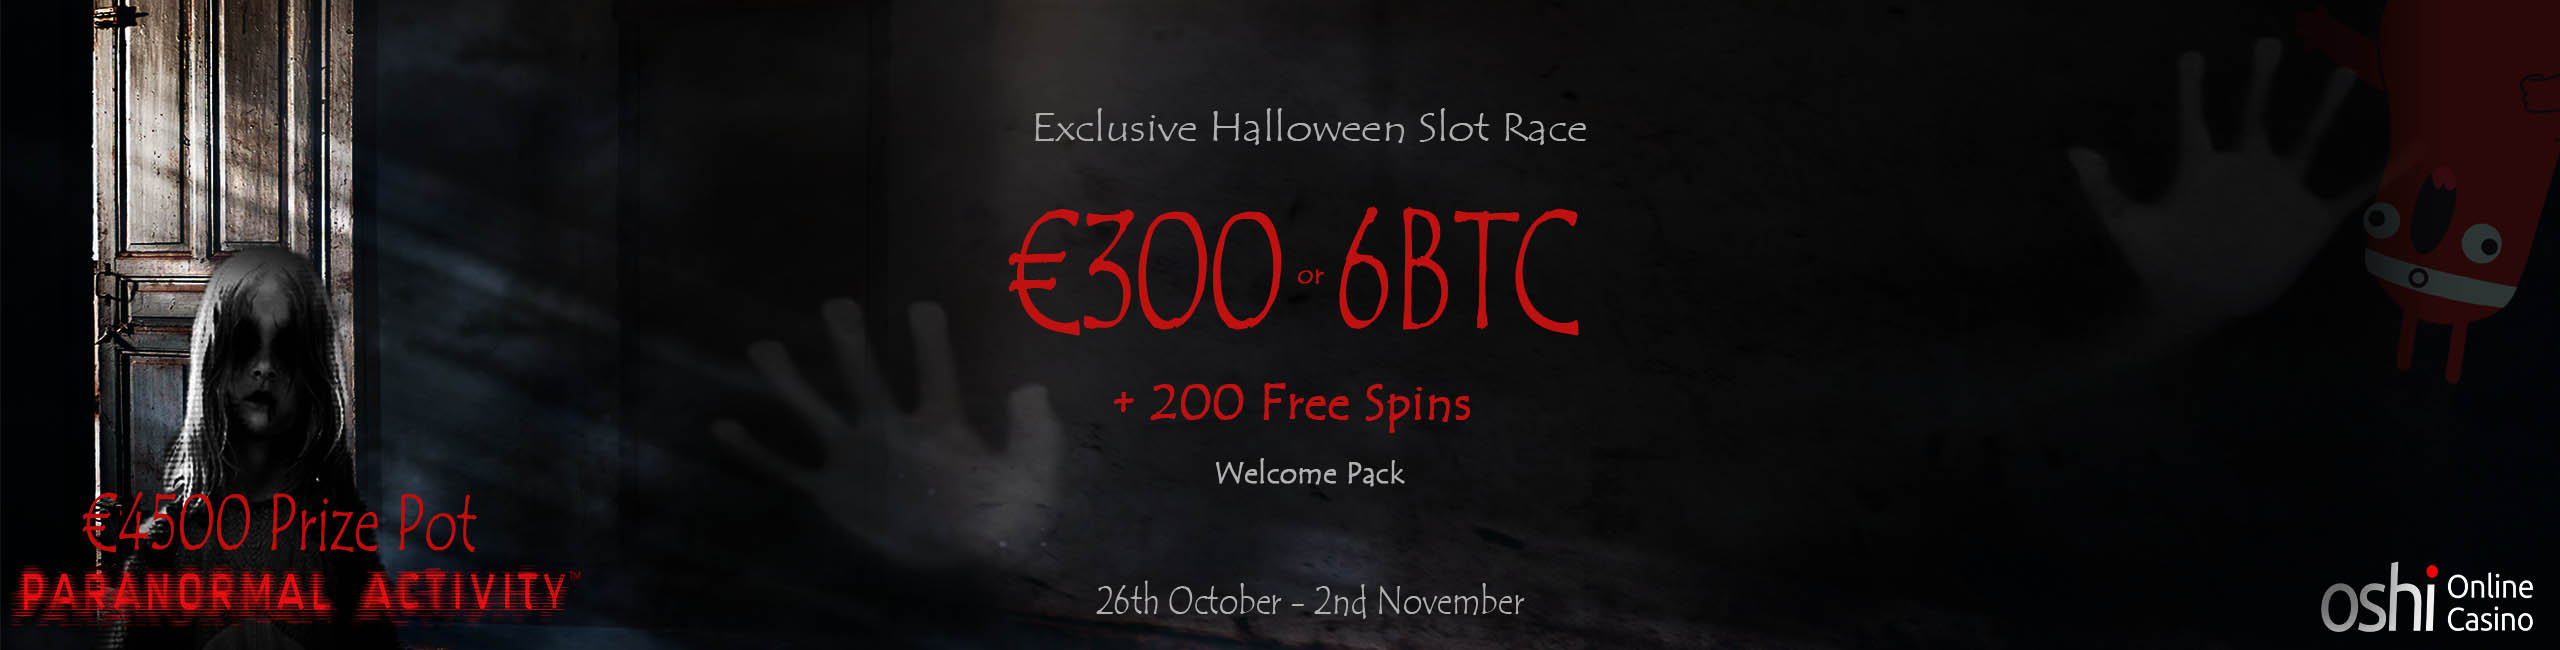 Oshi Bitcoin Casino iSoftBet Paranormal Activity